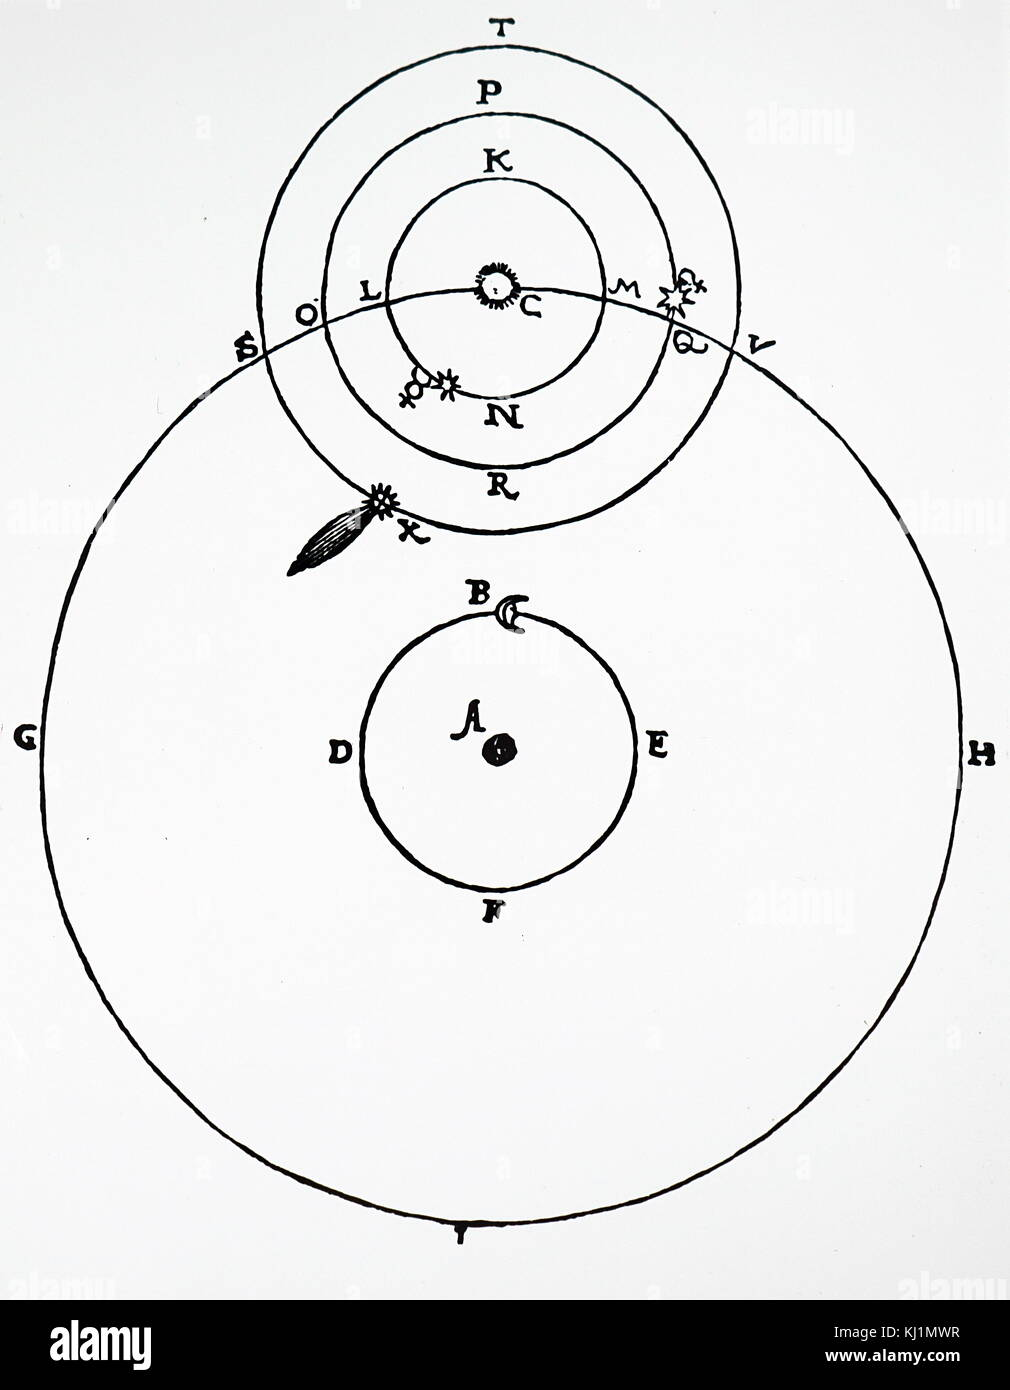 Diagram of the planets stock photos diagram of the planets stock diagram depicting tycho brahes planetary system showing at x the comet of 1577 dated 16th ccuart Choice Image